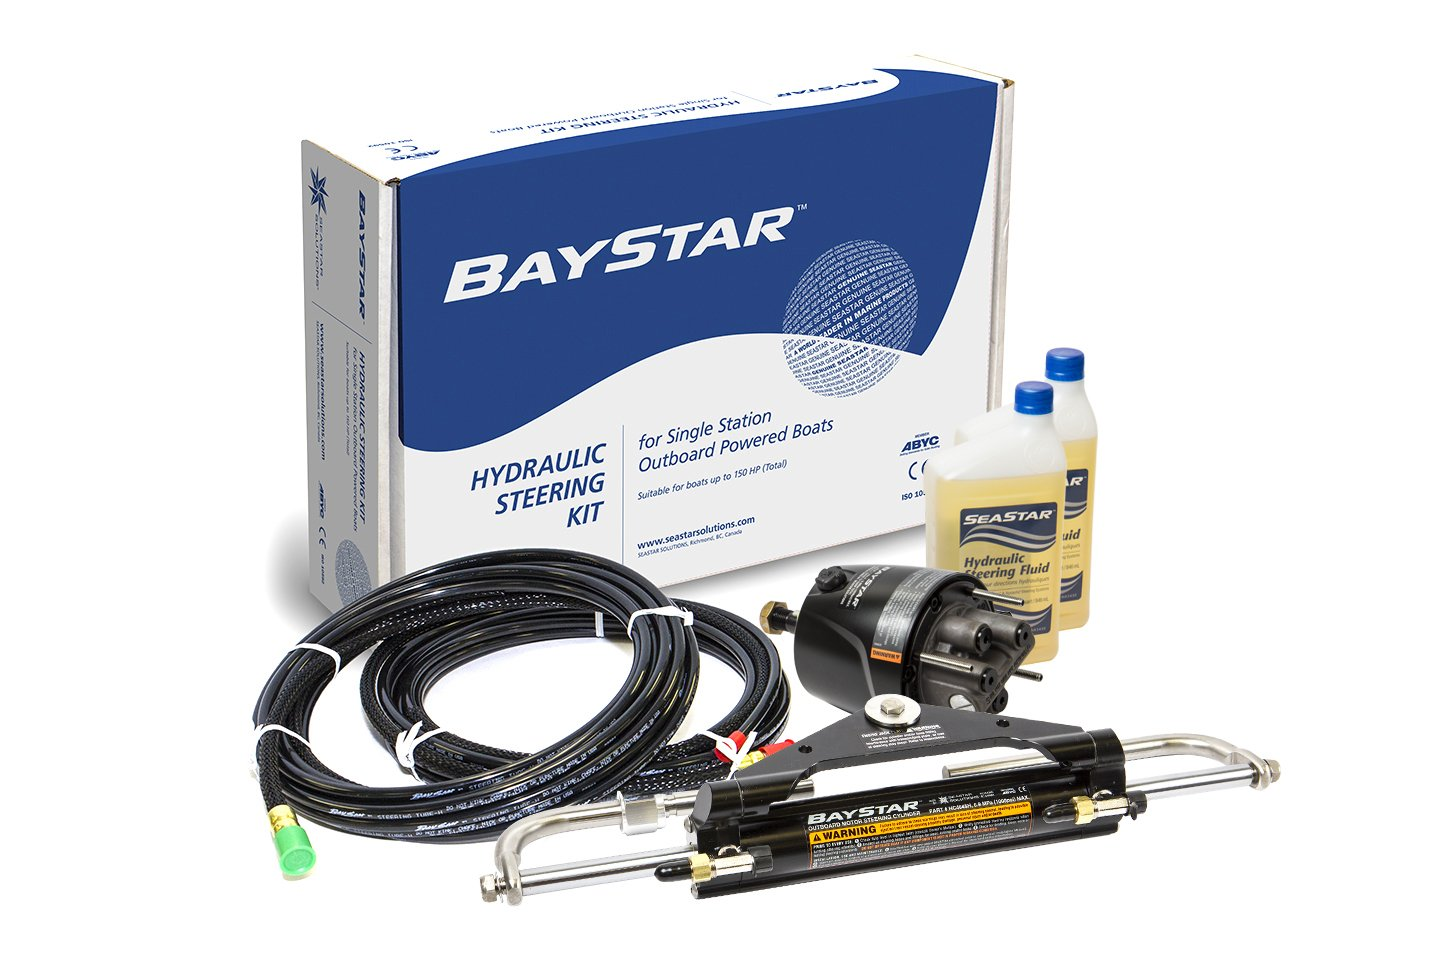 Baystar Kit, HK4200A-3, Hydraulic Steering Kit with Compact Cylinder with 20' Tubing by SeaStar